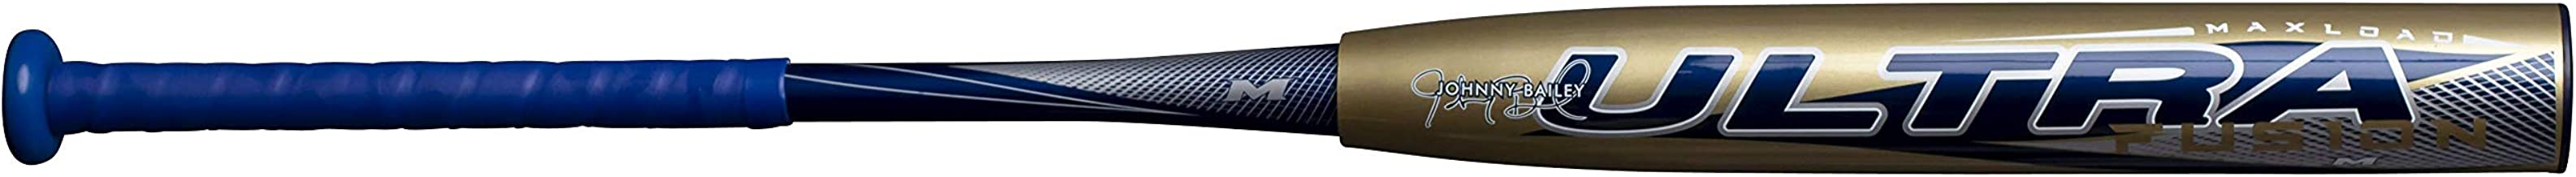 "Miken 2020 Ultra Fusion 12"" Johnny Bailey Maxload Senior Slow Pitch Softball Bat: MUF2MS MUF2MS"